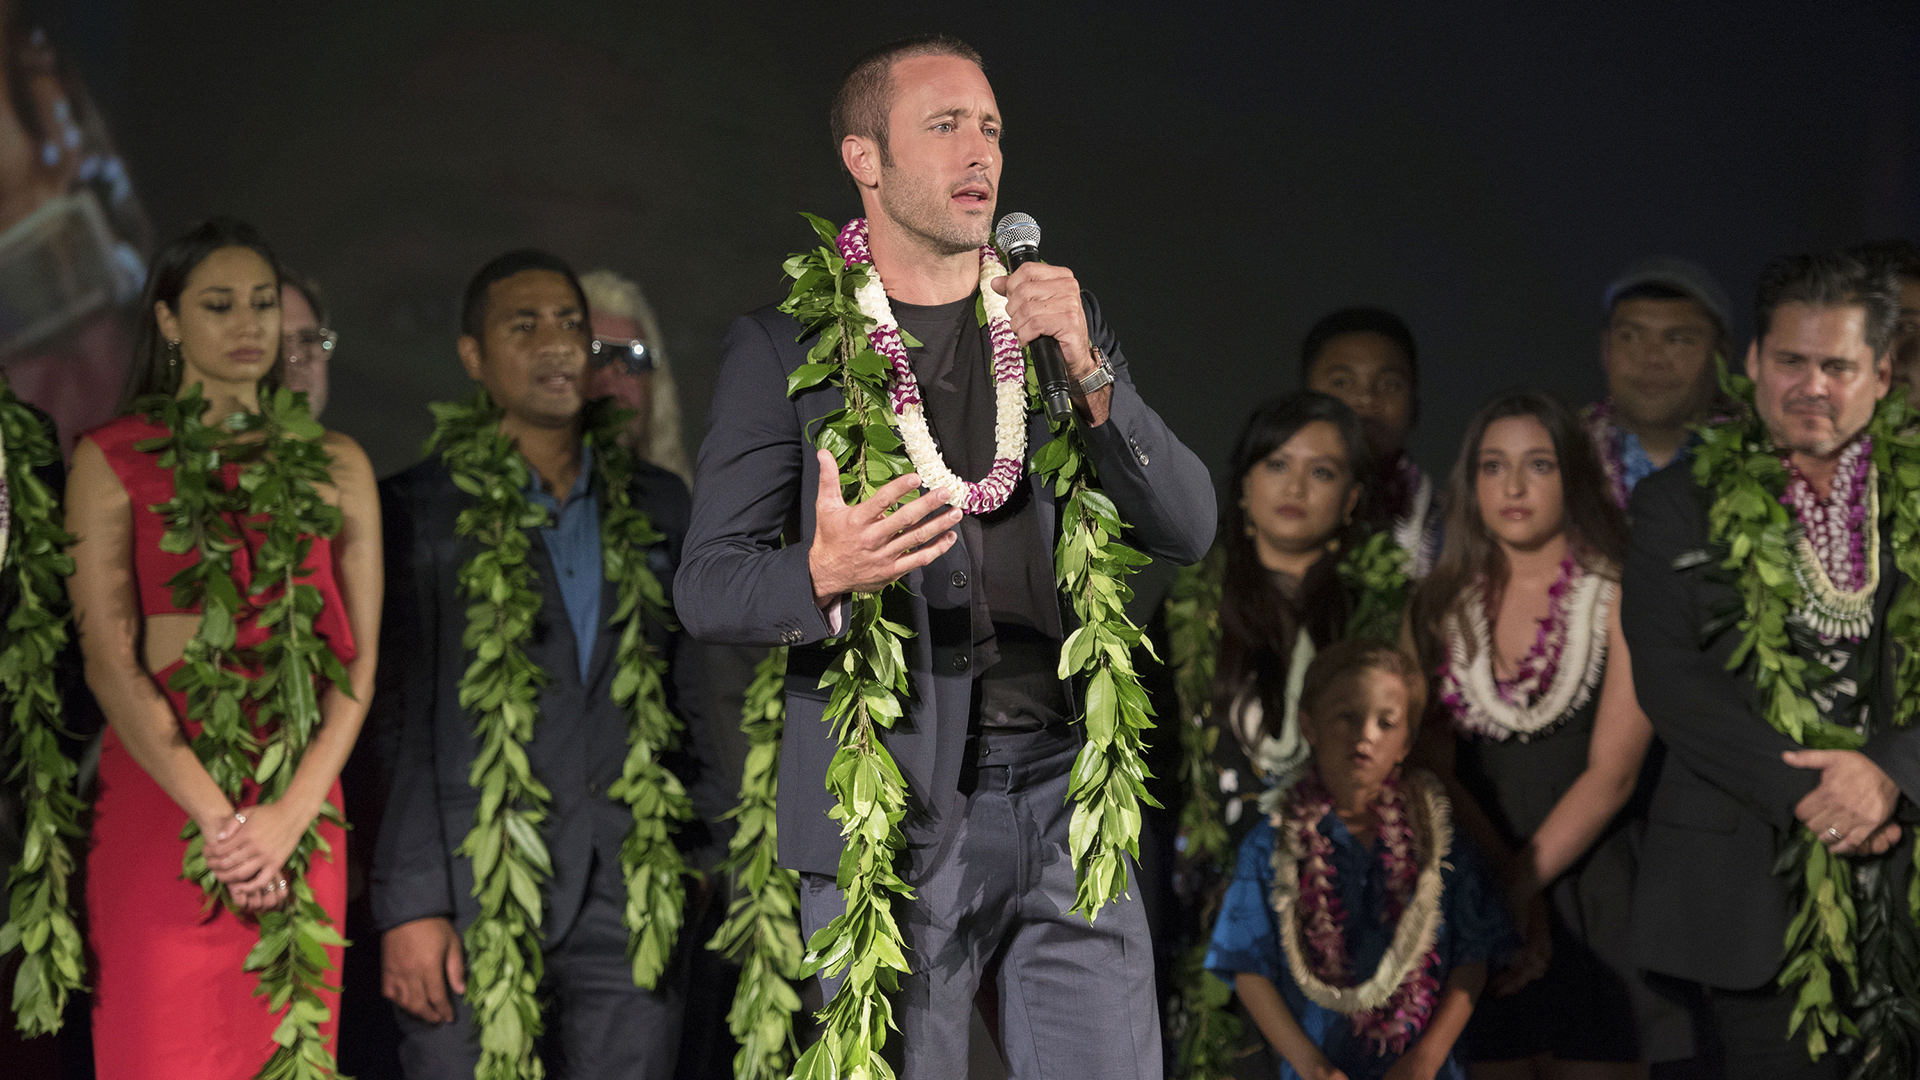 Alex O'Loughlin thanks the Five-0 fans.